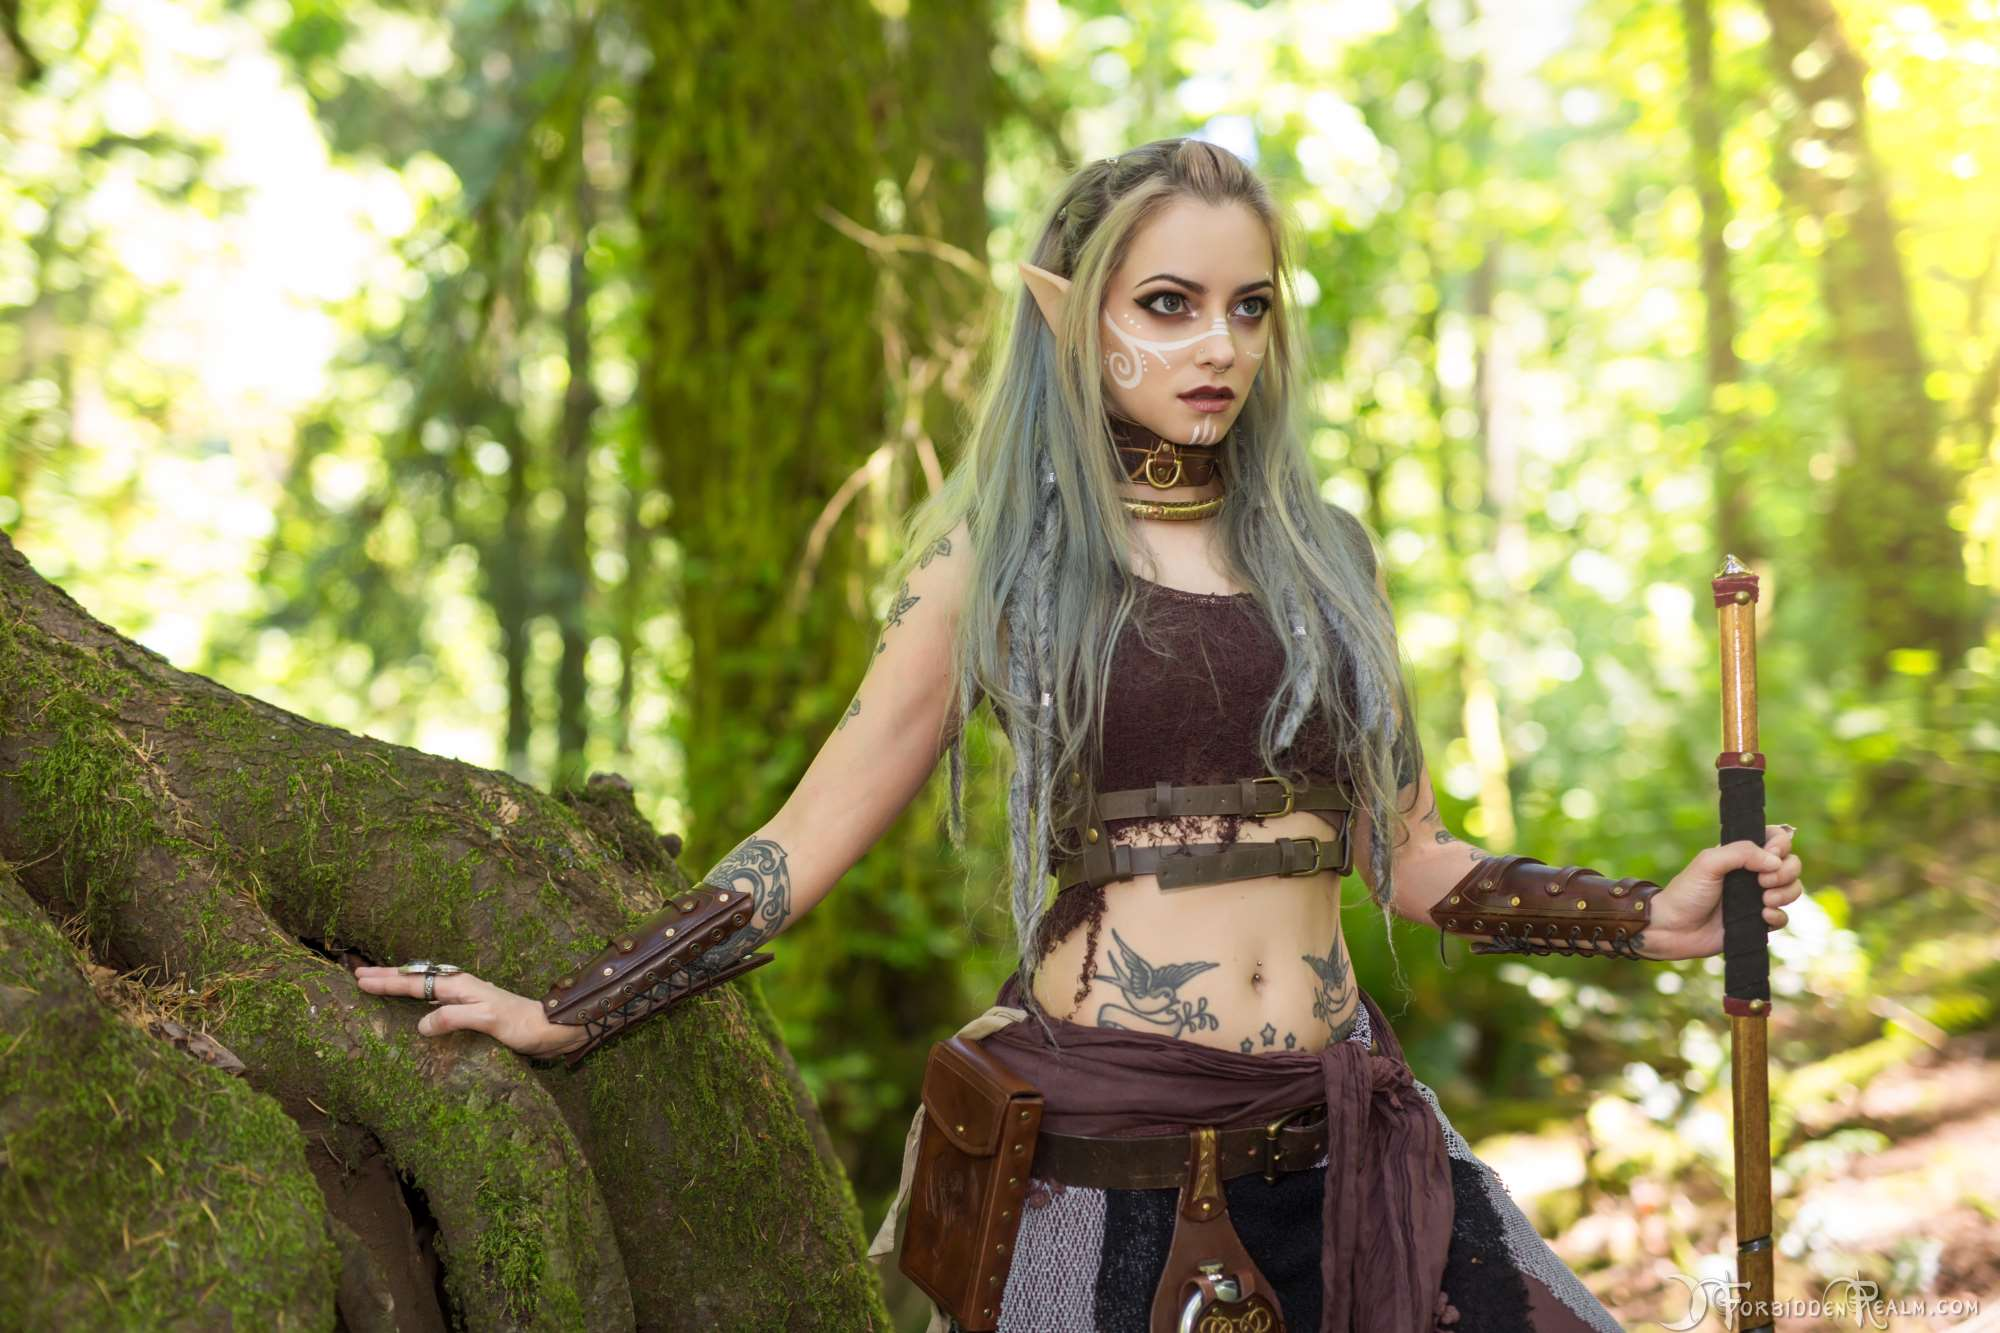 Tattoo Elf Girl Outdoor, Hd Girls, 4K Wallpapers, Images, Backgrounds, Photos And Pictures-6300